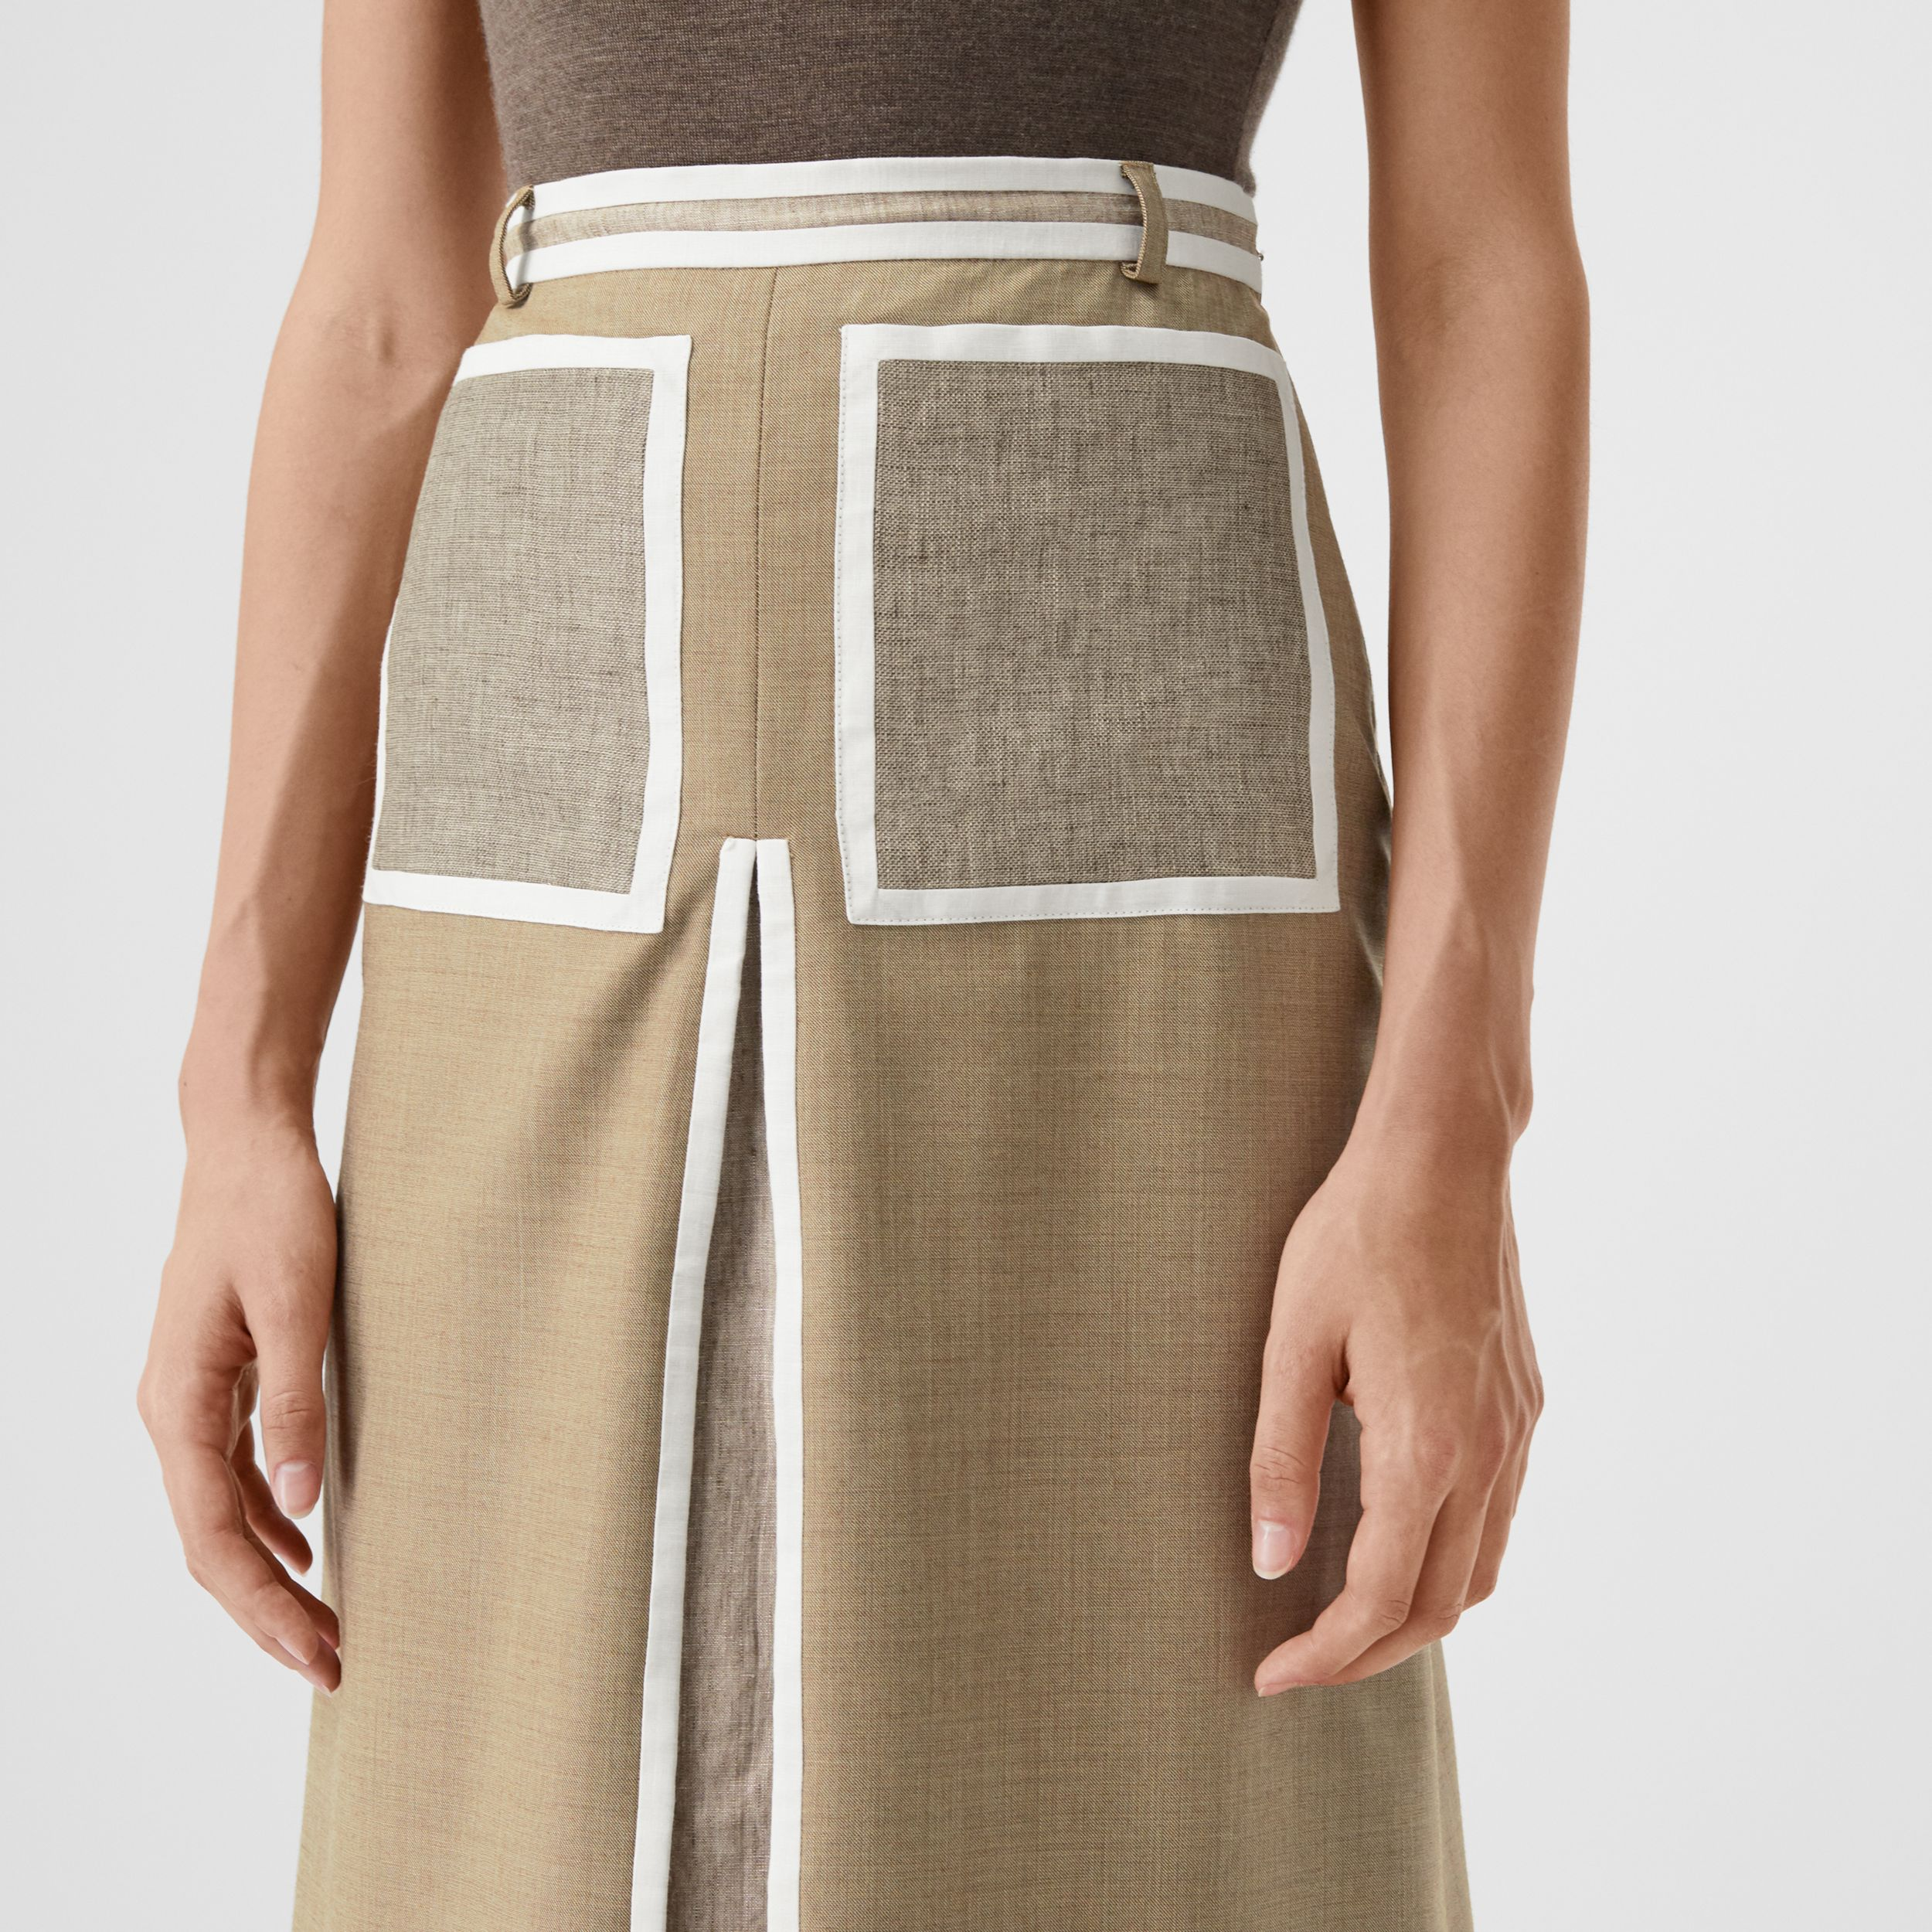 Box-pleat Detail Wool Cashmere A-line Skirt in Pecan Melange - Women | Burberry - 2